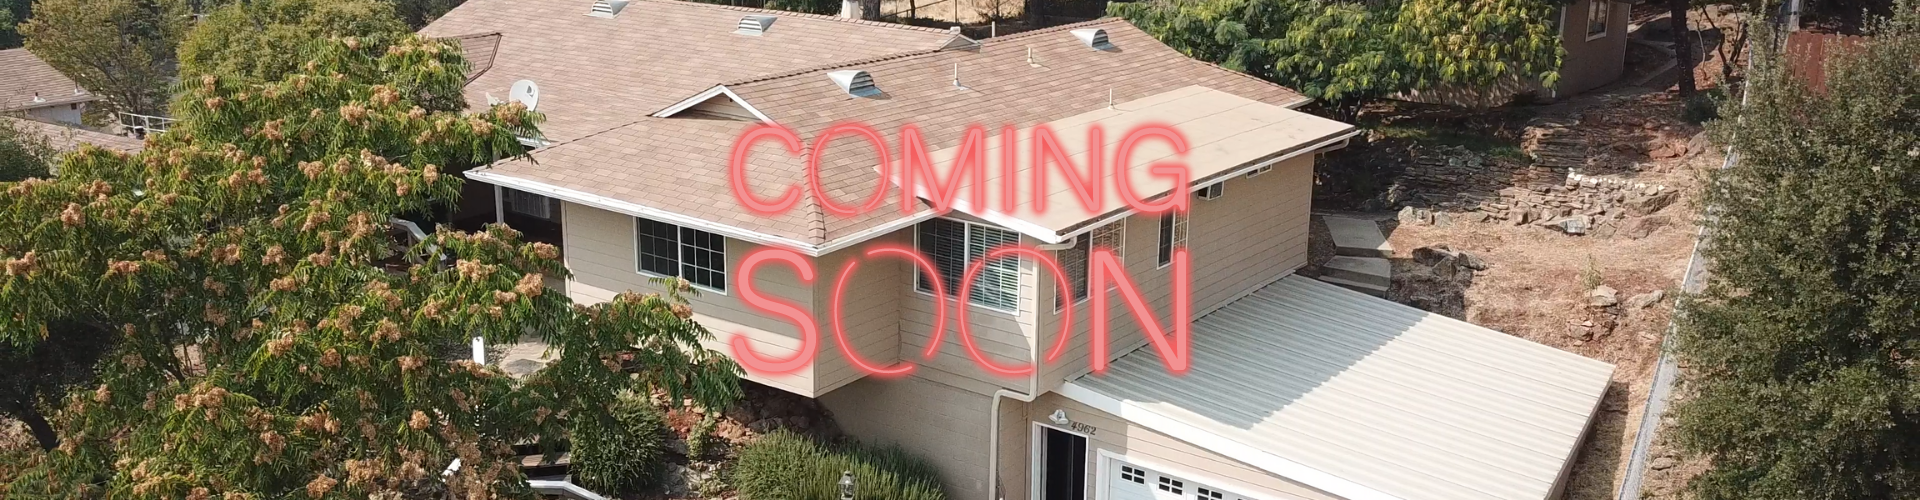 We will soon be opening up our latest property, a retro 1960's house with three full bedrooms and three baths, with a lovely backyard and plenty of room to accommodate a large family!